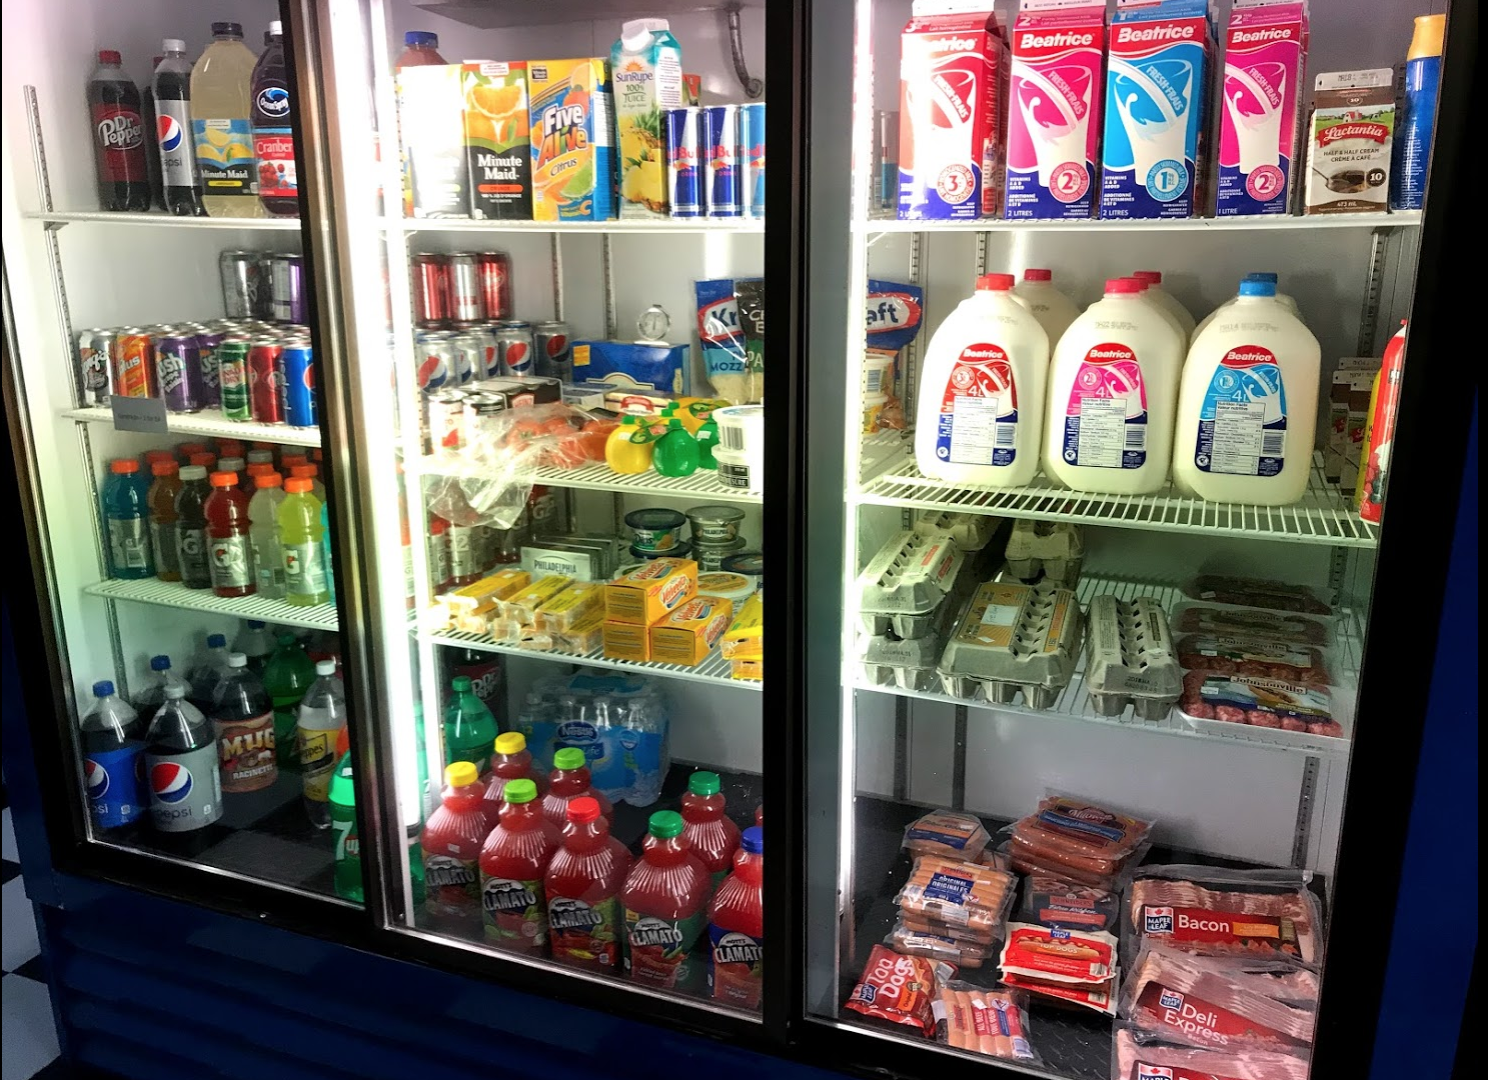 You can get the staples - milk, eggs, meat, juice and pop.